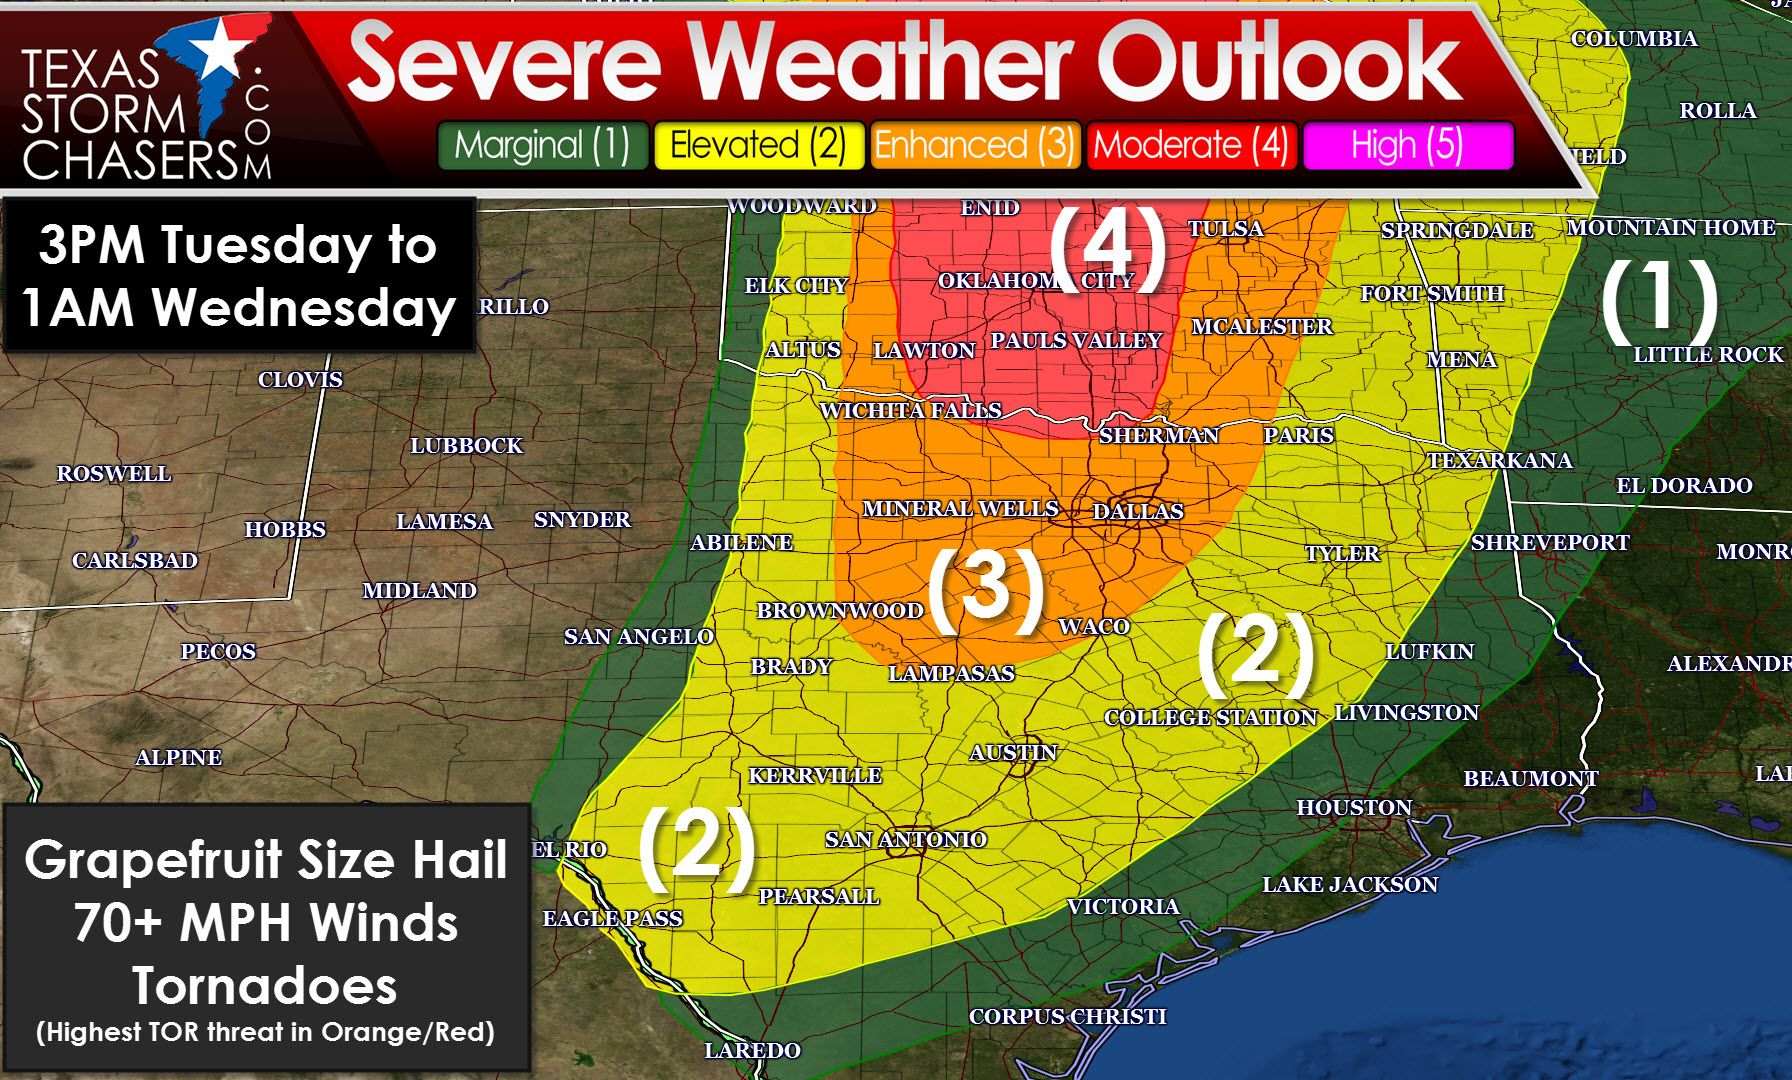 Severe Weather Event Tomorrow And Tomorrow Night Texas Storm Chasers Severe Weather Texas Storm Severe